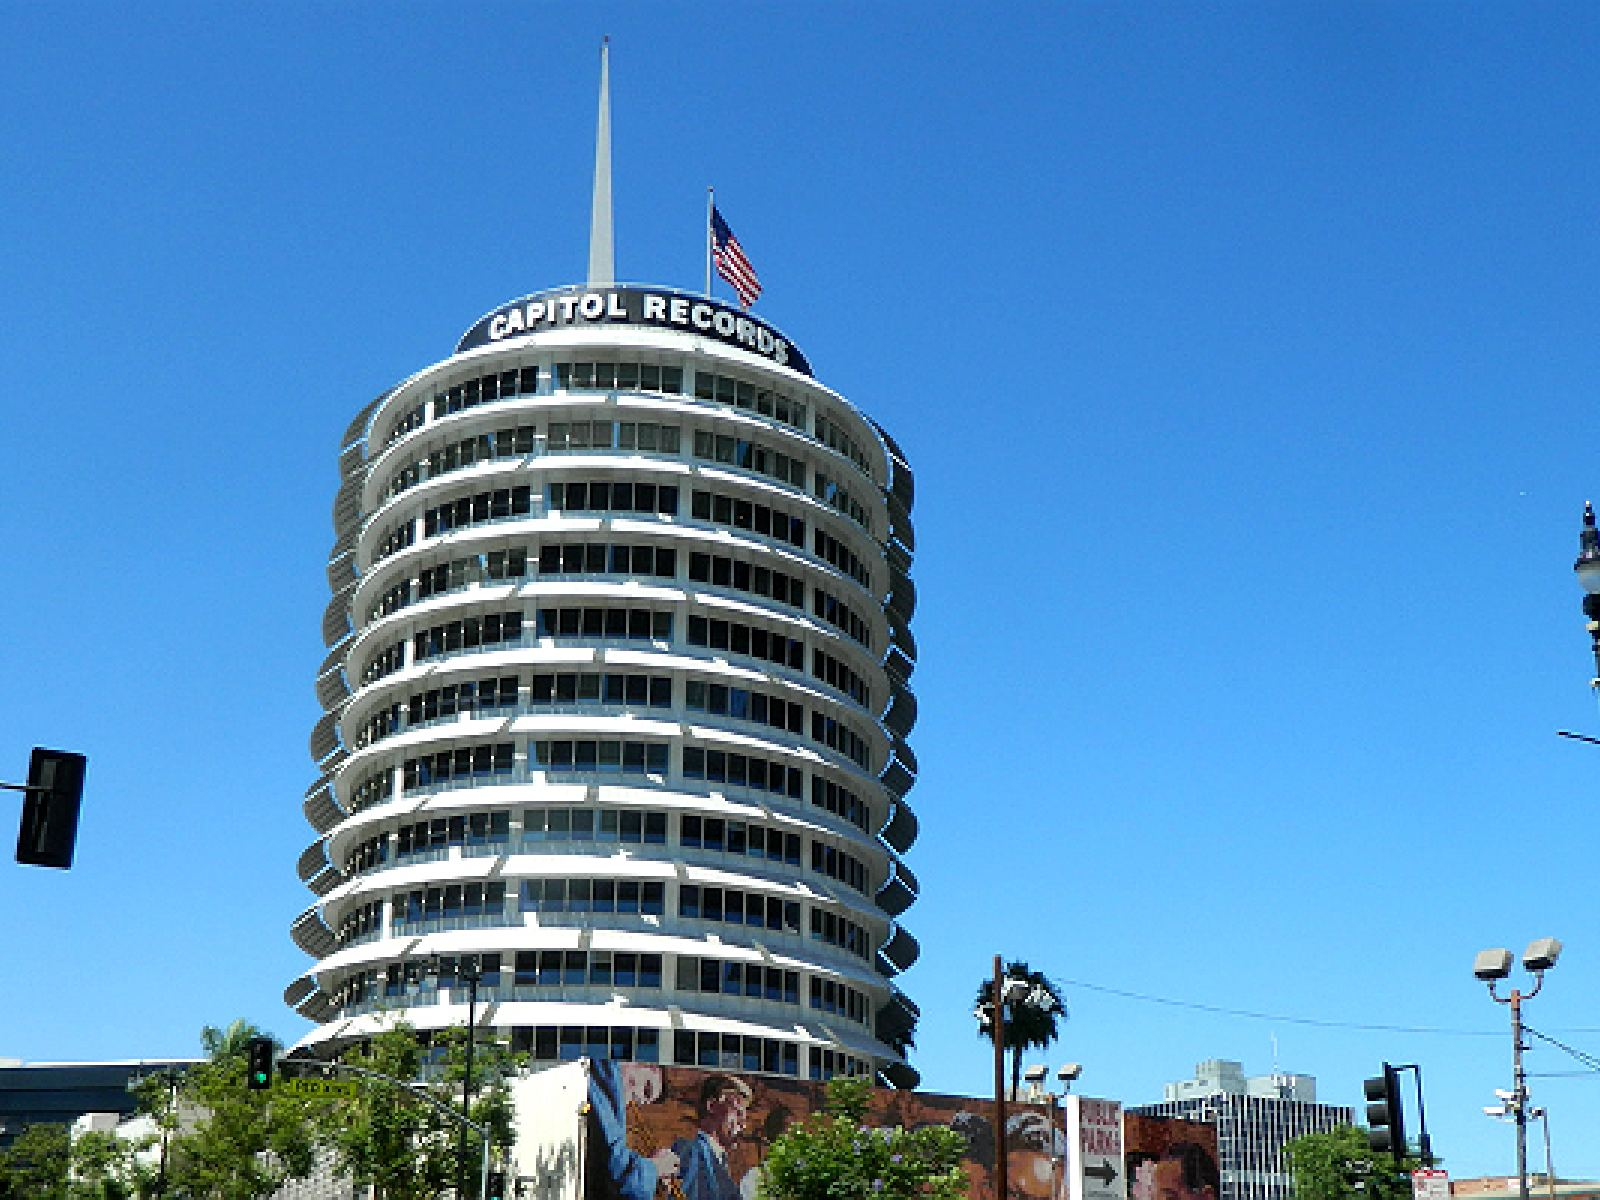 Capitol Records Building | Photo courtesy of jeff_soffer, Flickr